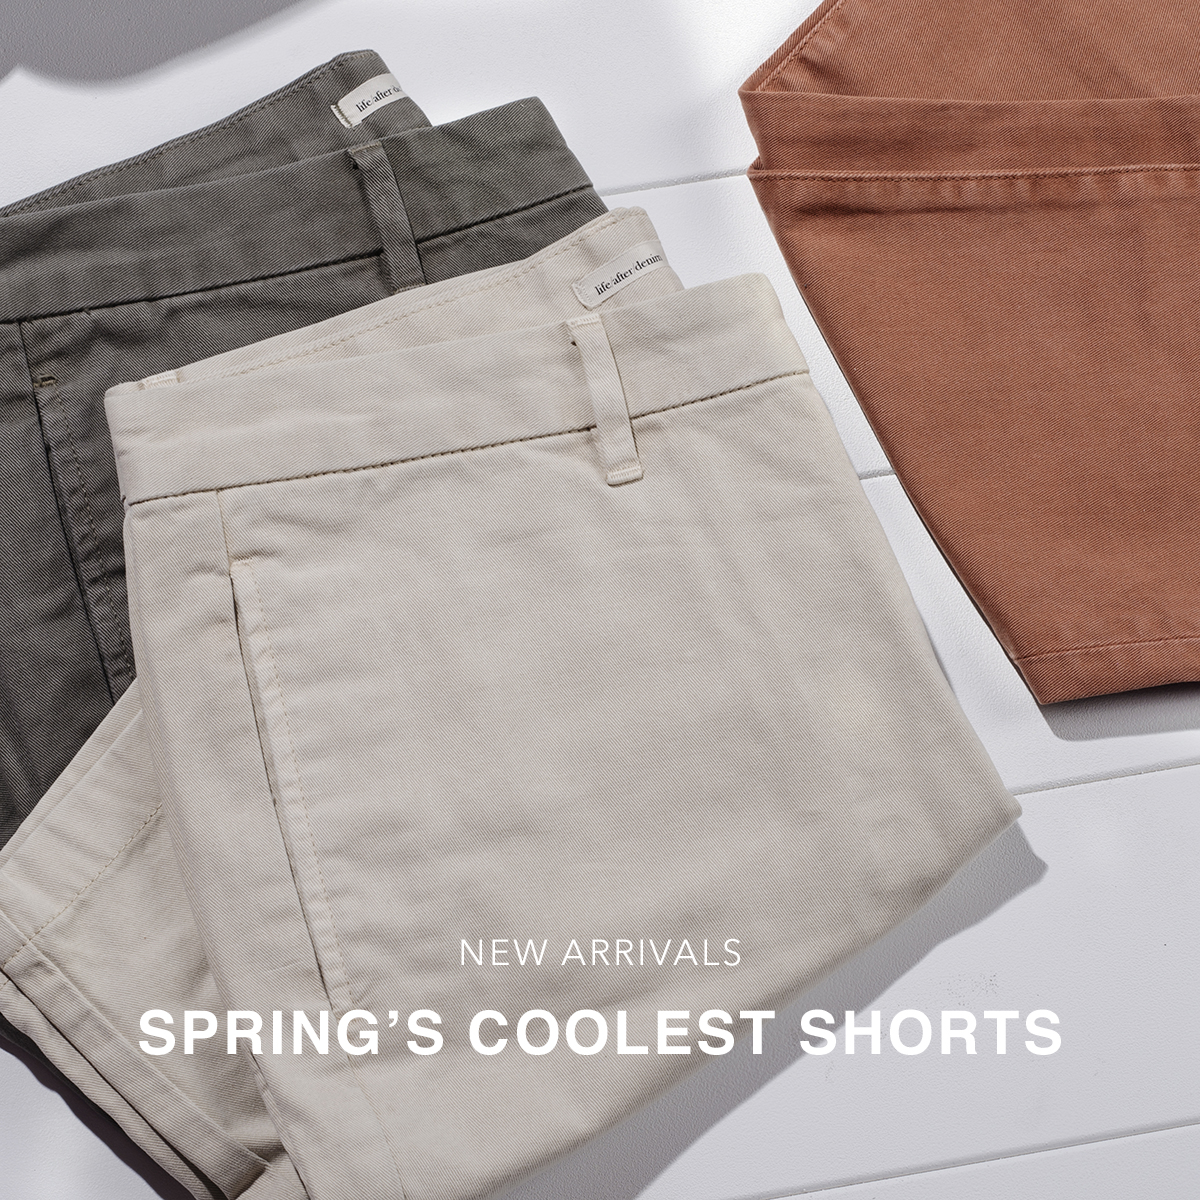 New Arrivals: Spring's Coolest Shorts